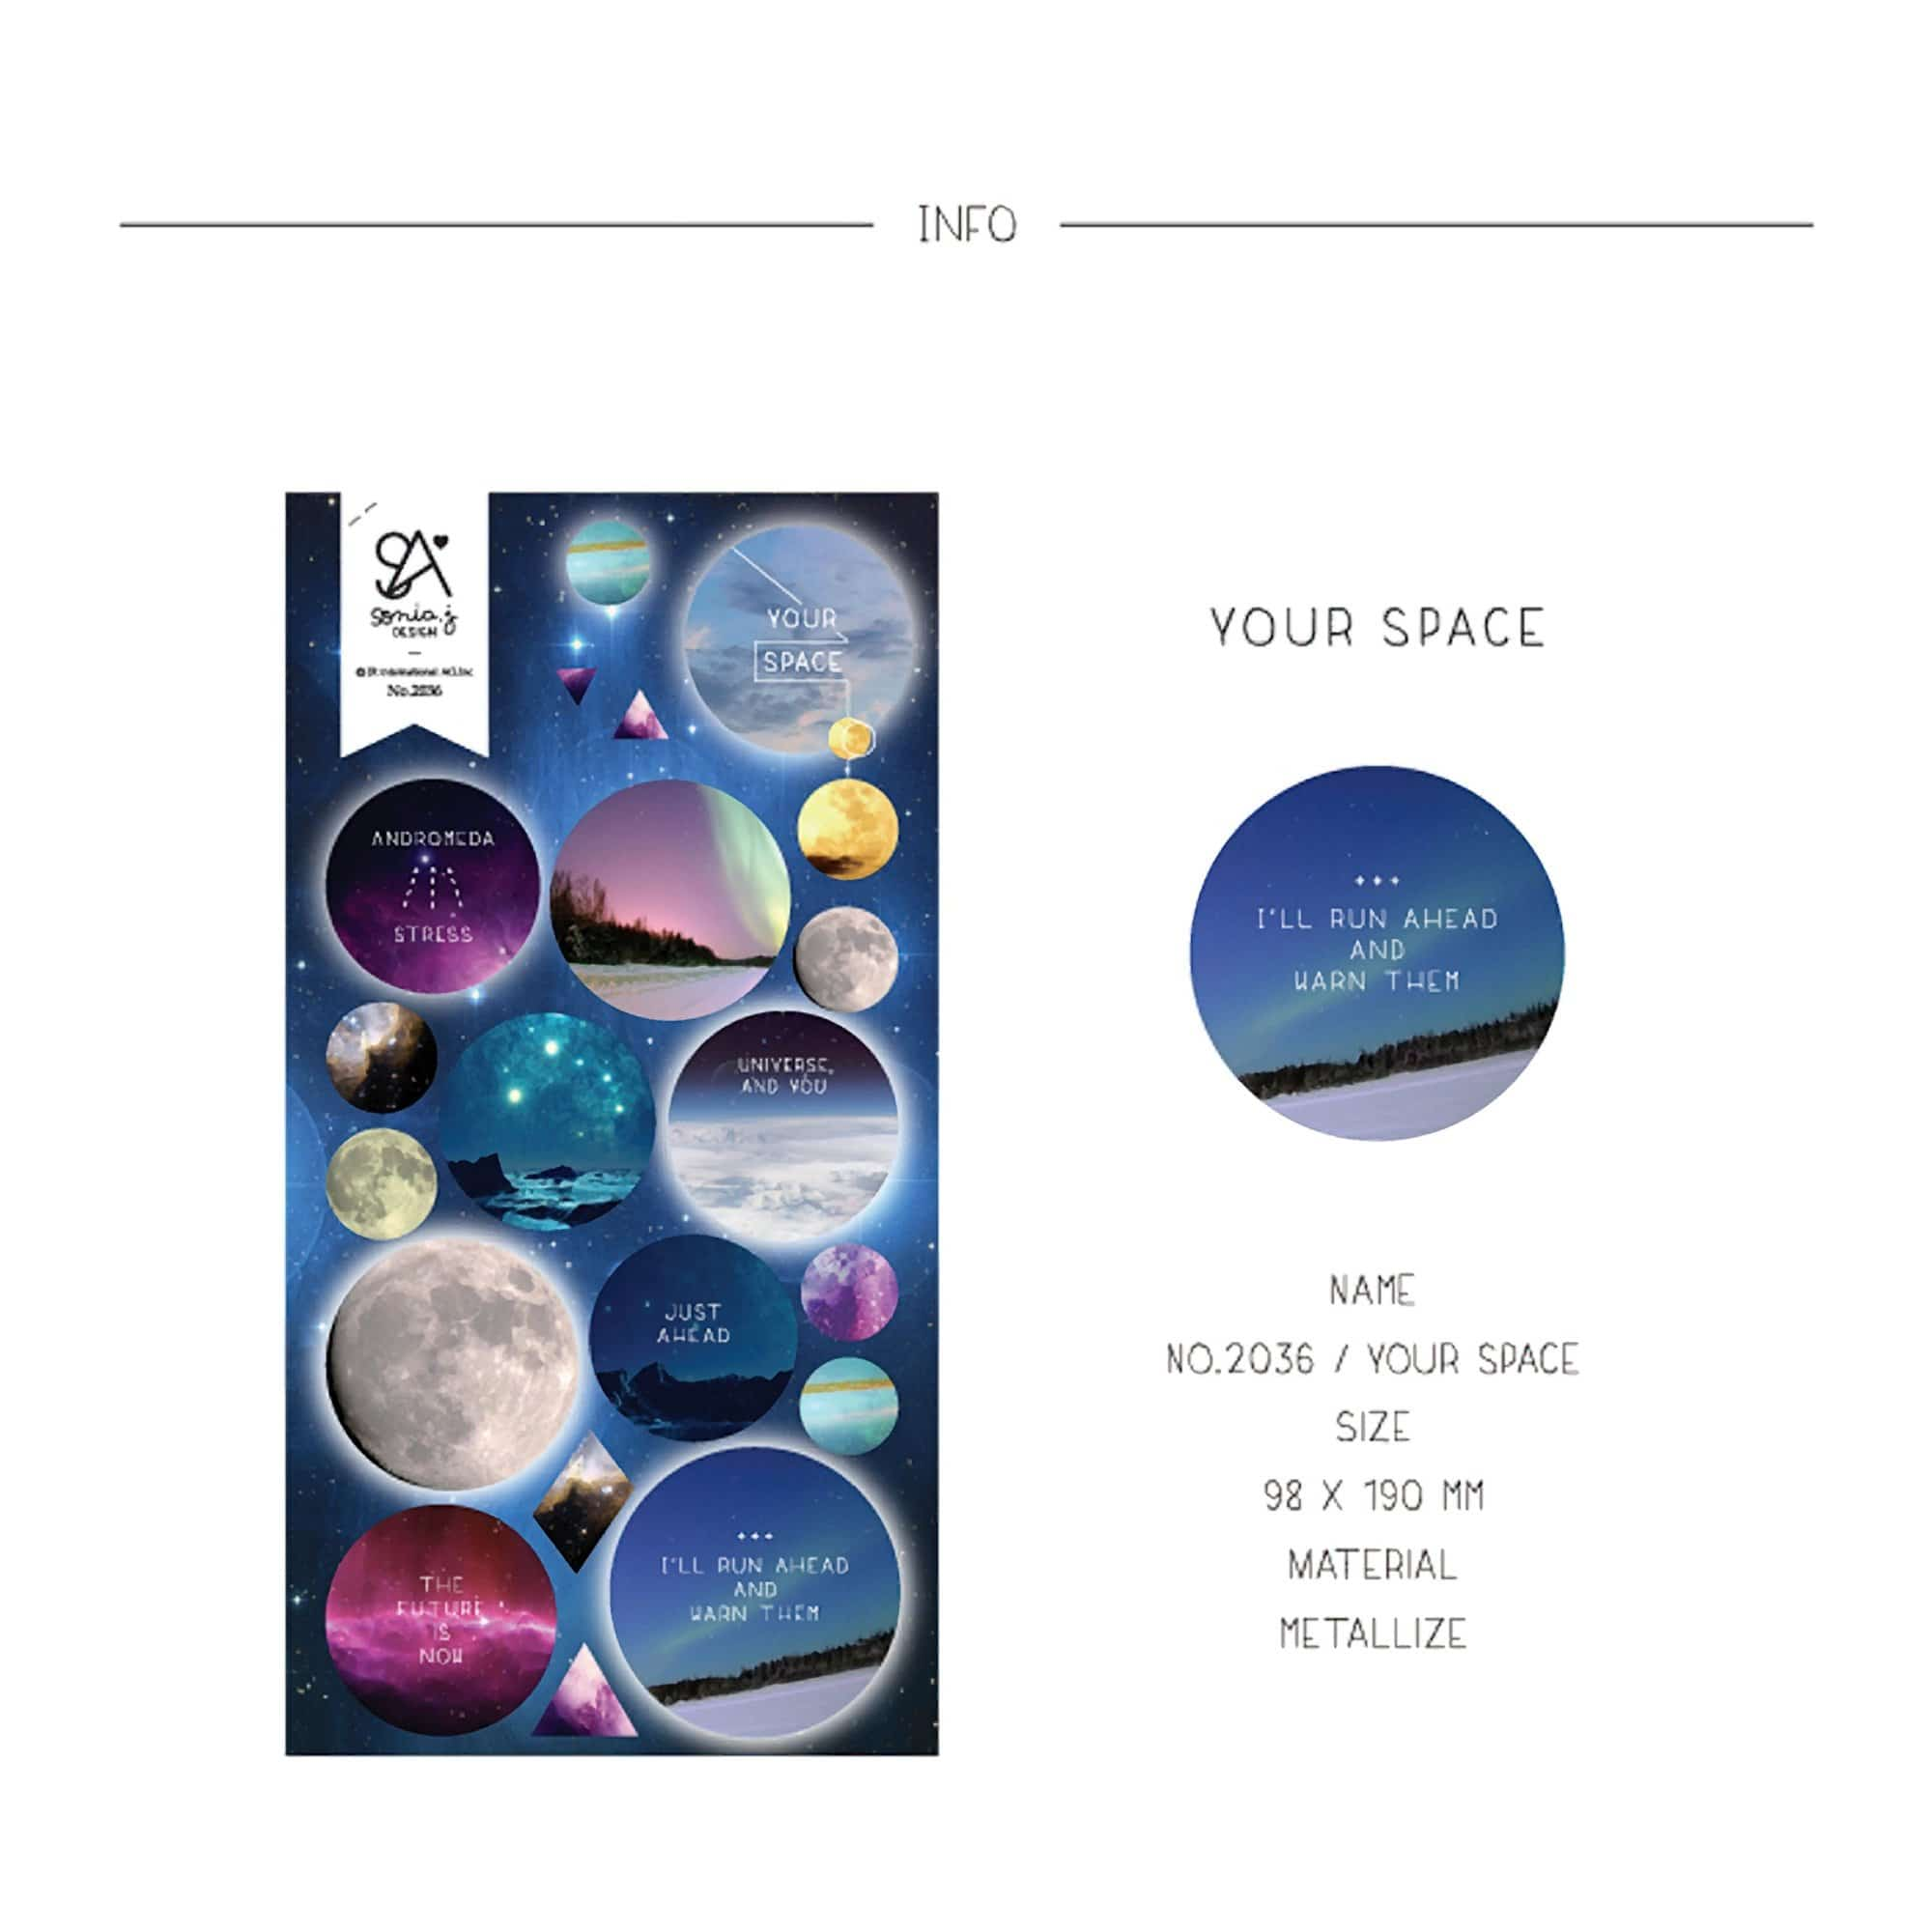 Suatelier Sonia PVC Puffy 3D Stickers 2036 | Your Space Galaxy Stickers Outer Space Stickers Planet Stickers - The Stationery Life!